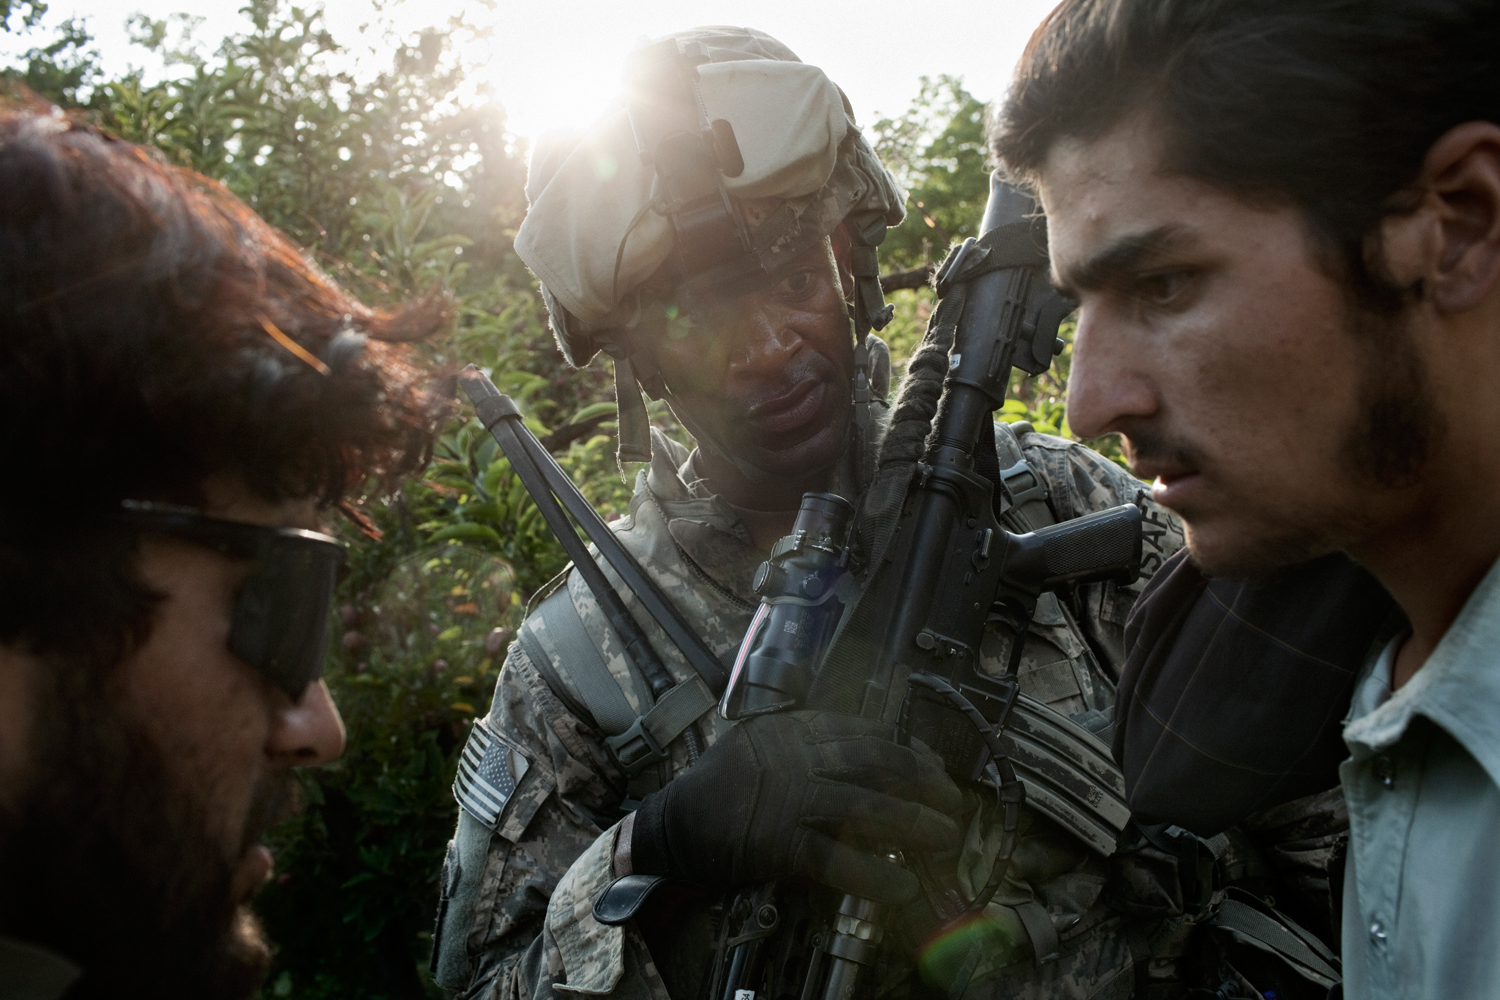 A U.S. Army soldier and Afghan interpreter question a local villager in the Tangi Valley, Wardak Province, Afghanistan.